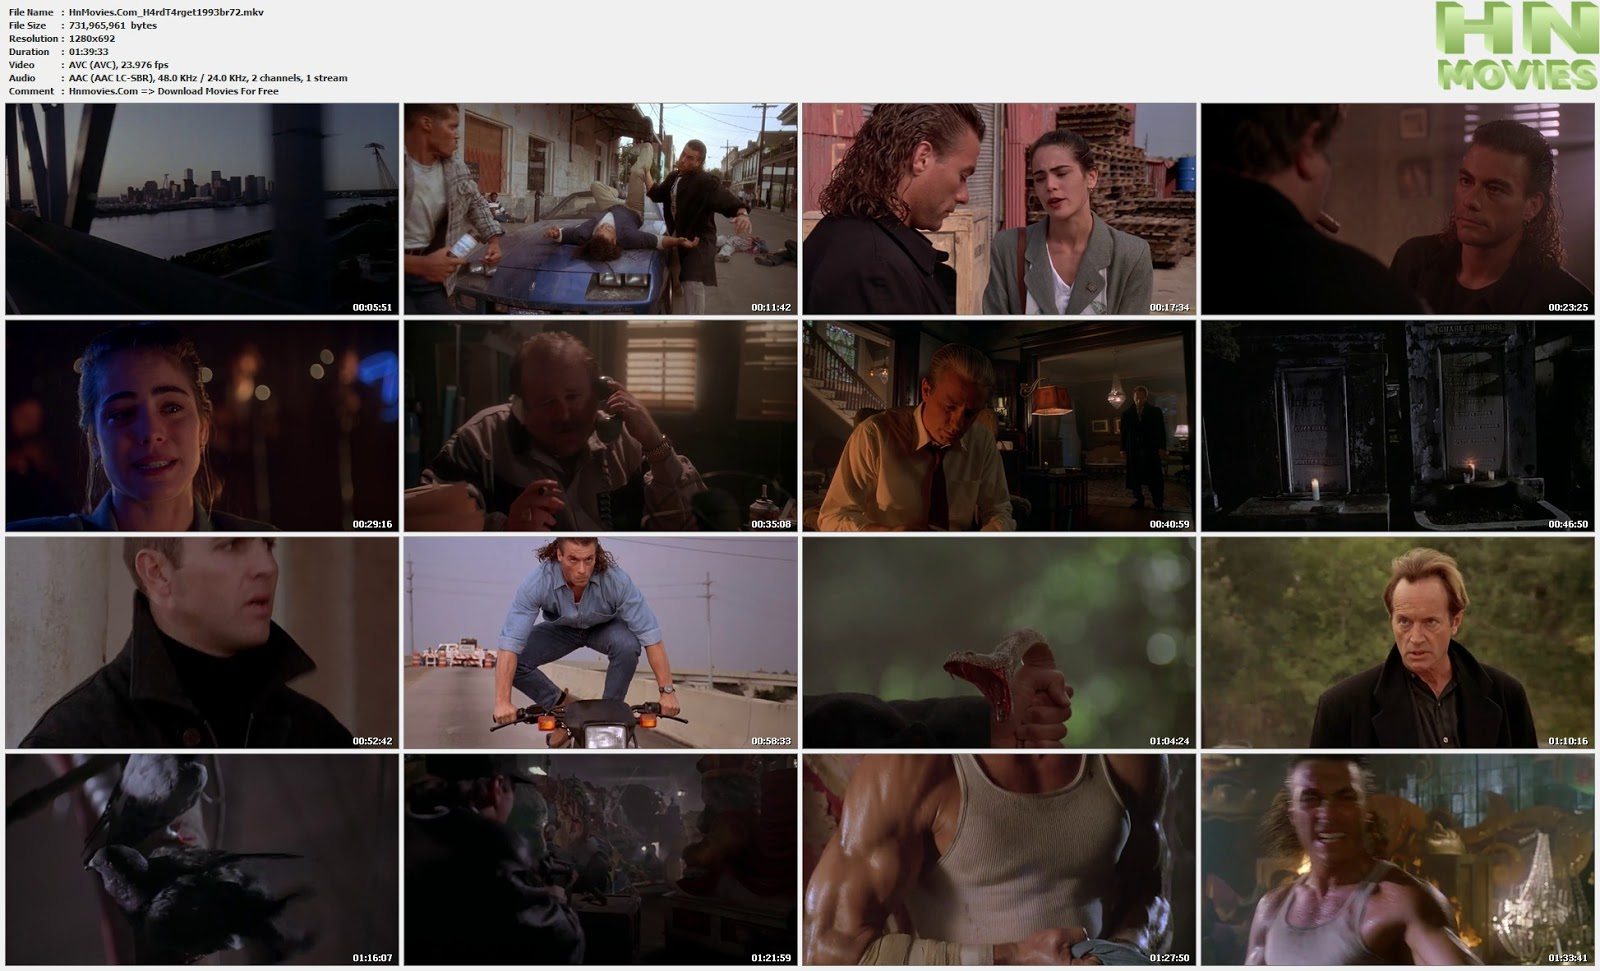 movie screenshot of Hard Target fdmovie.com